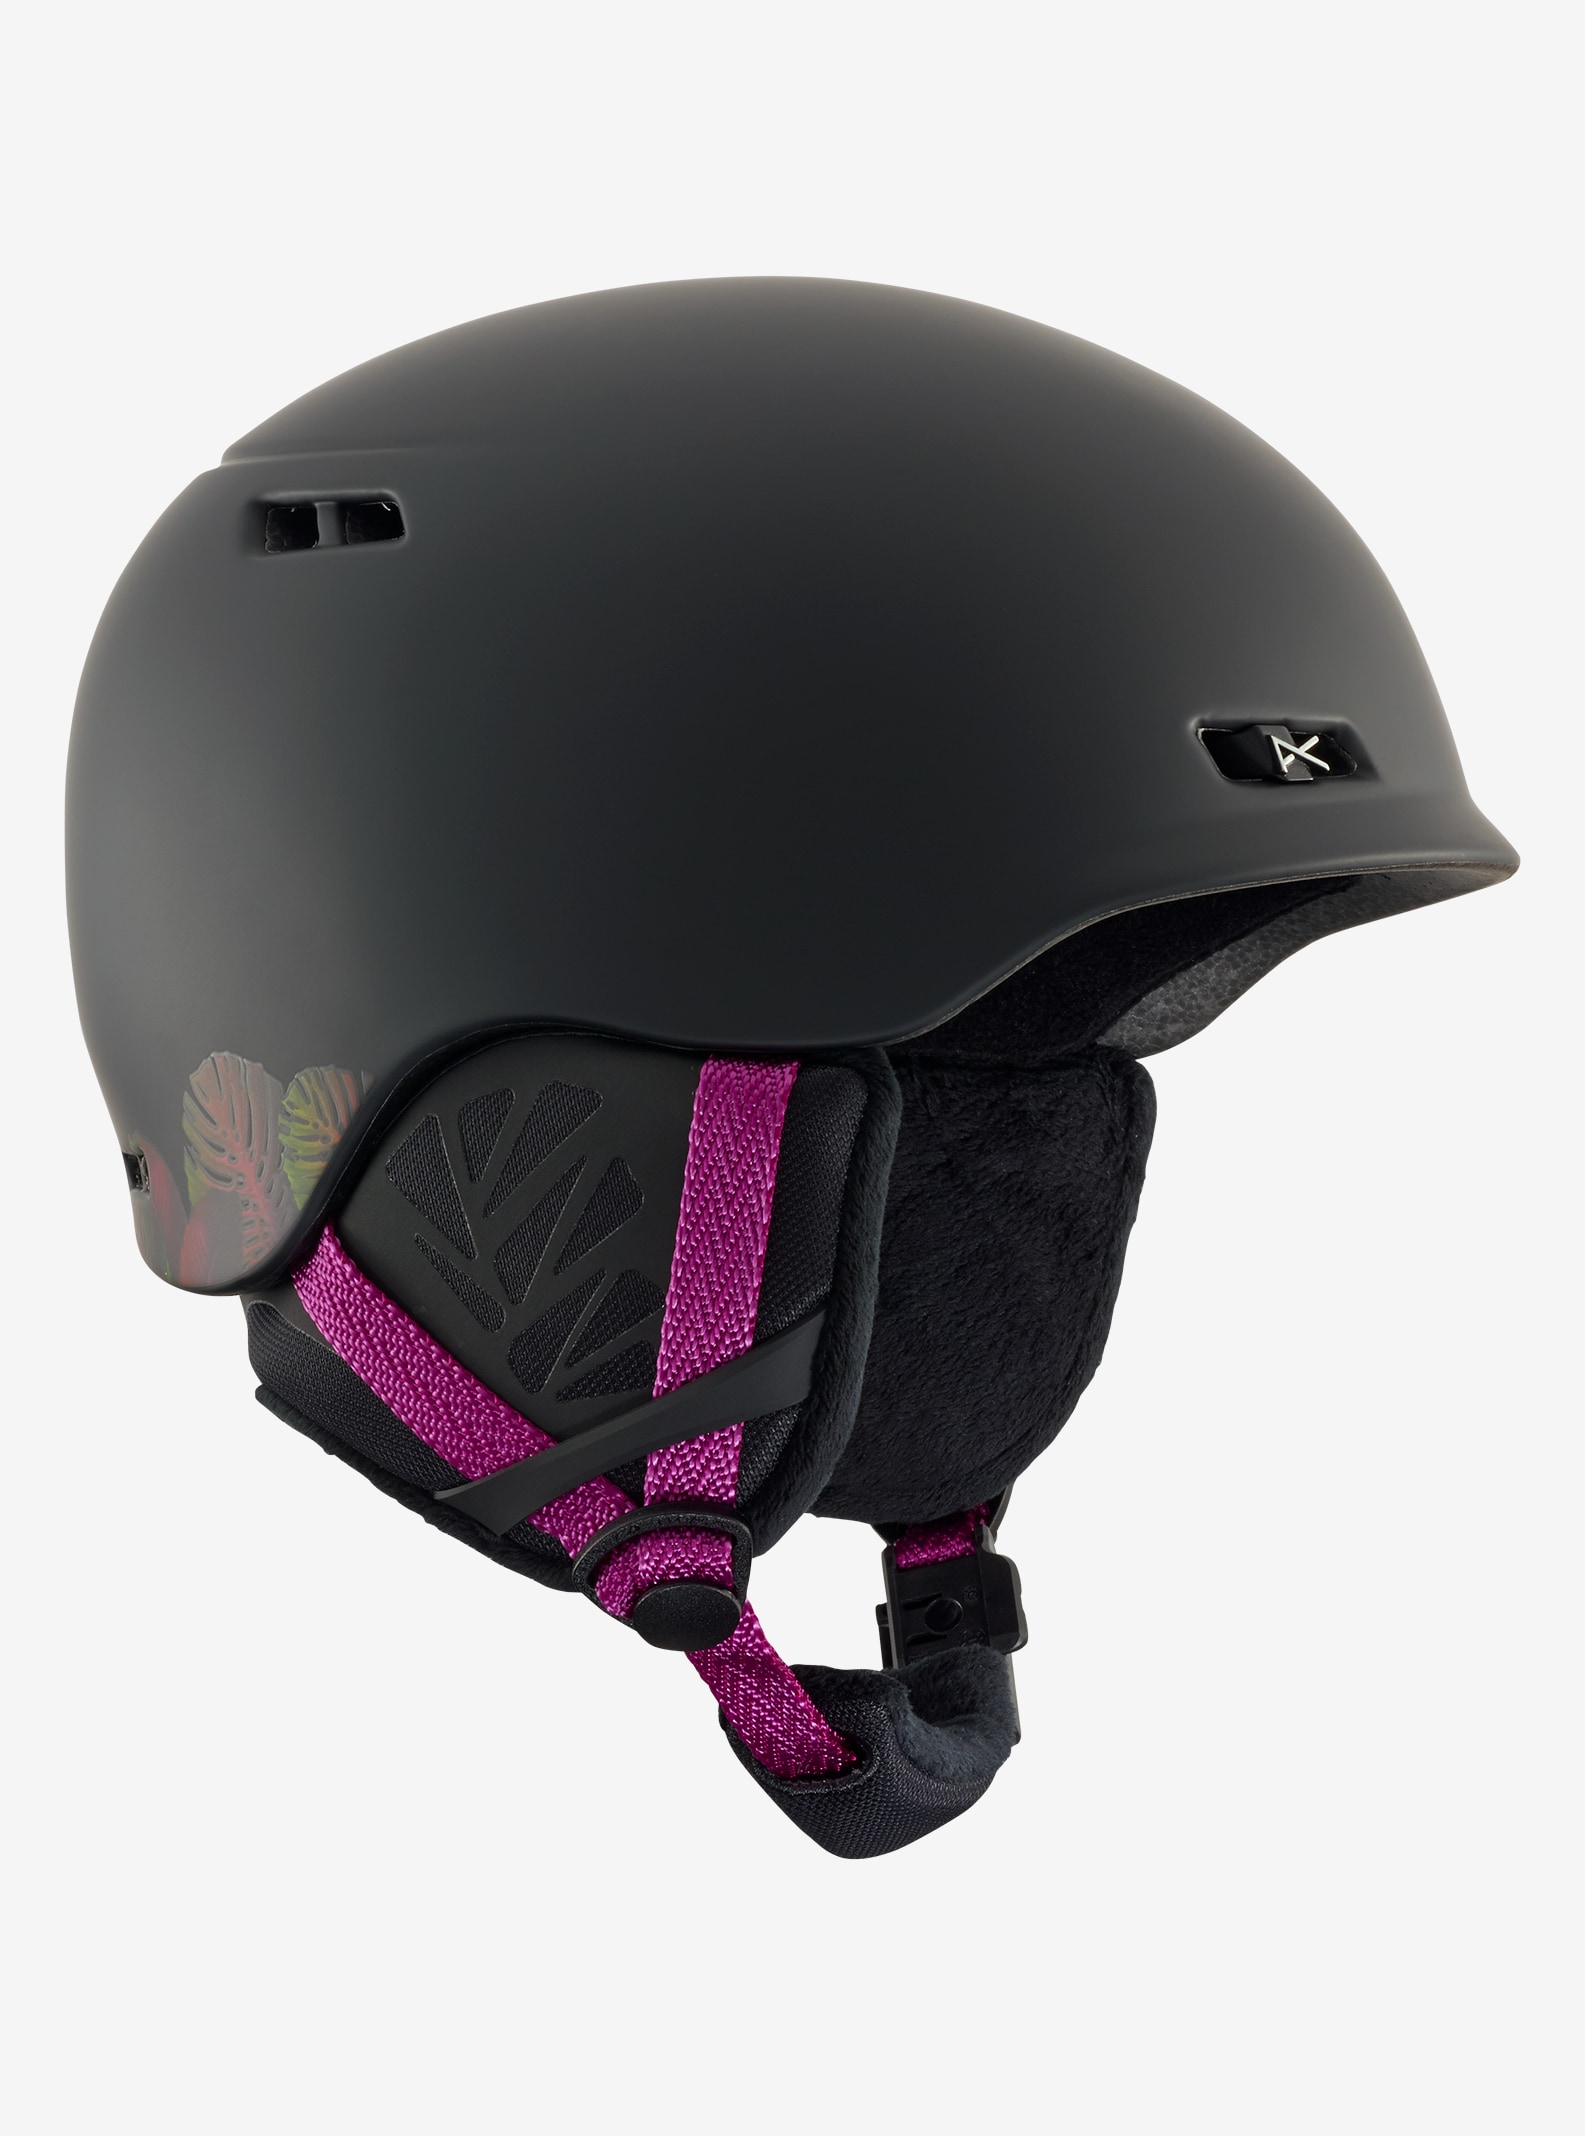 Women's Anon Griffon Helmet shown in Black